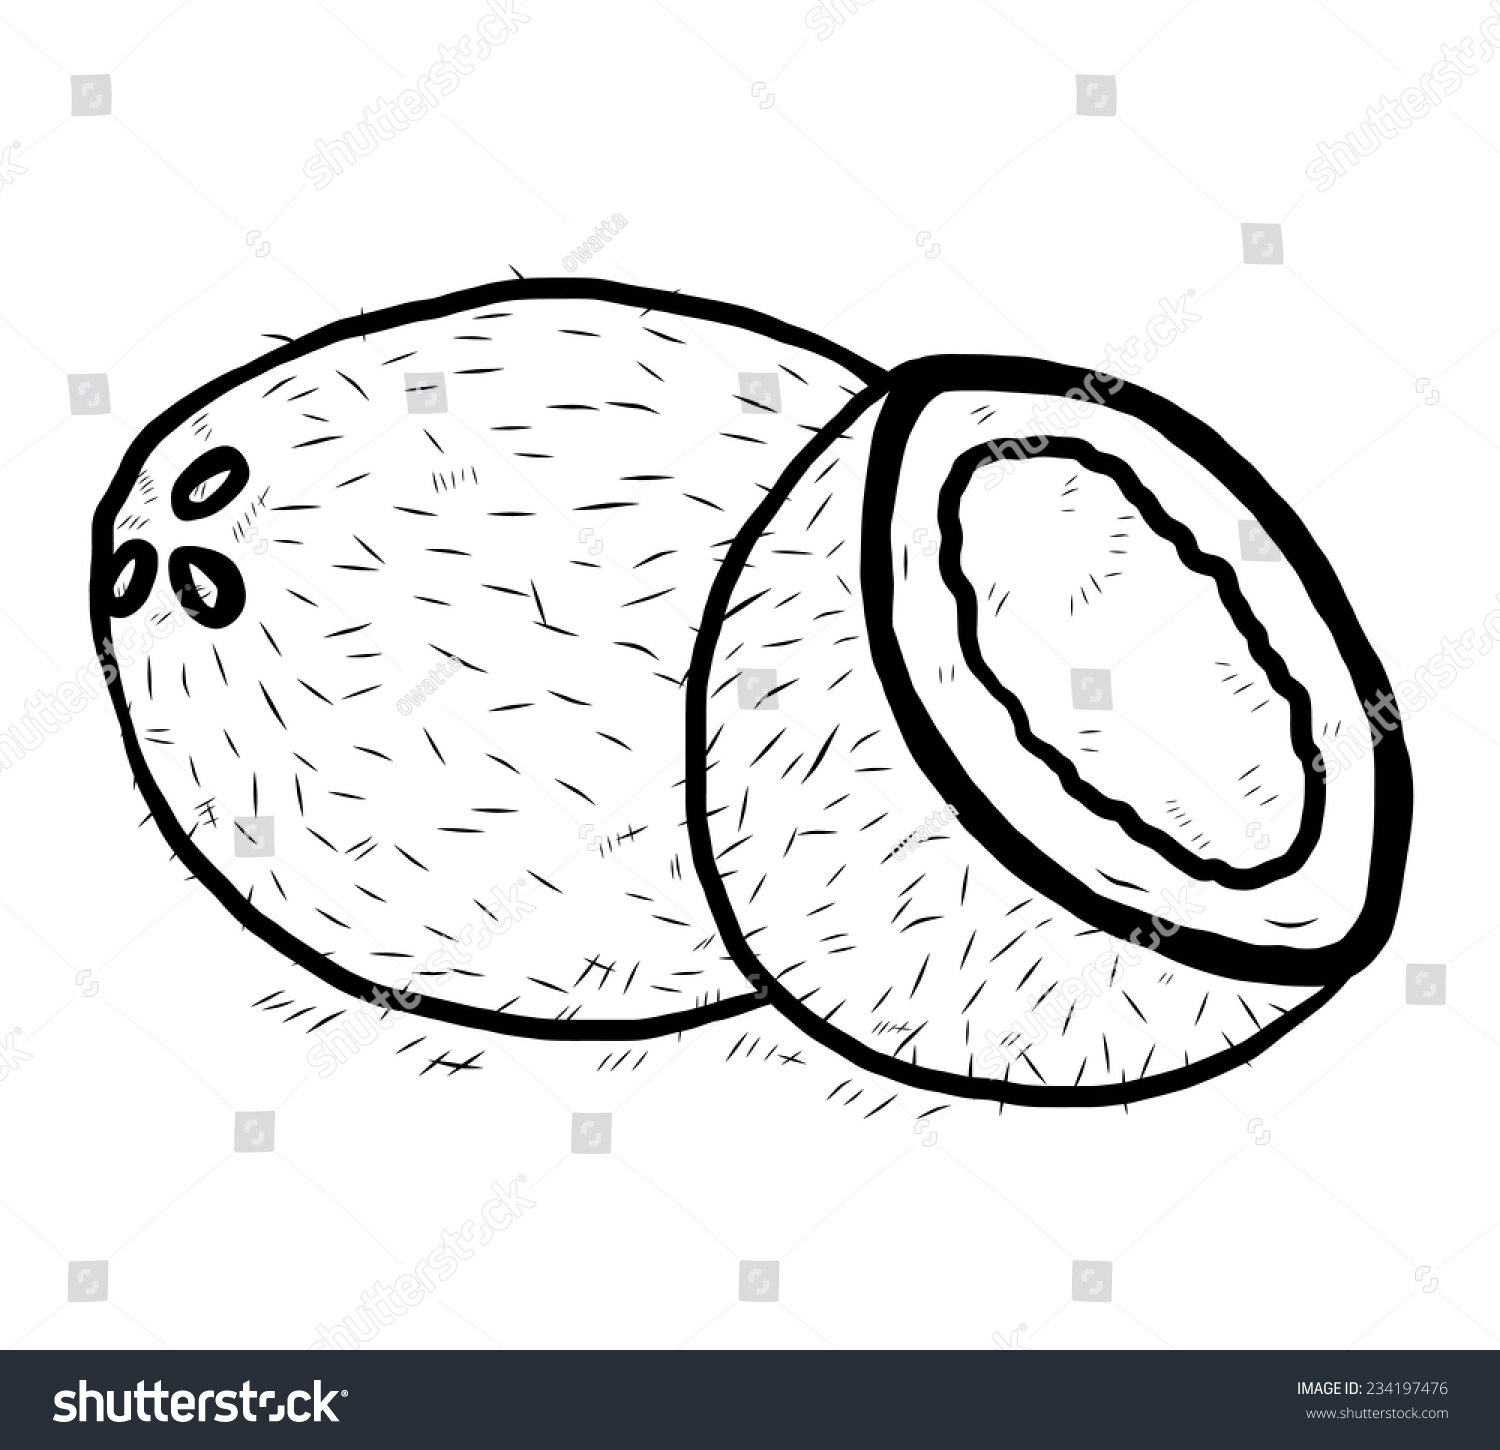 Coconut Cartoon Vector And Illustration Black White Hand Drawn Sketch Style